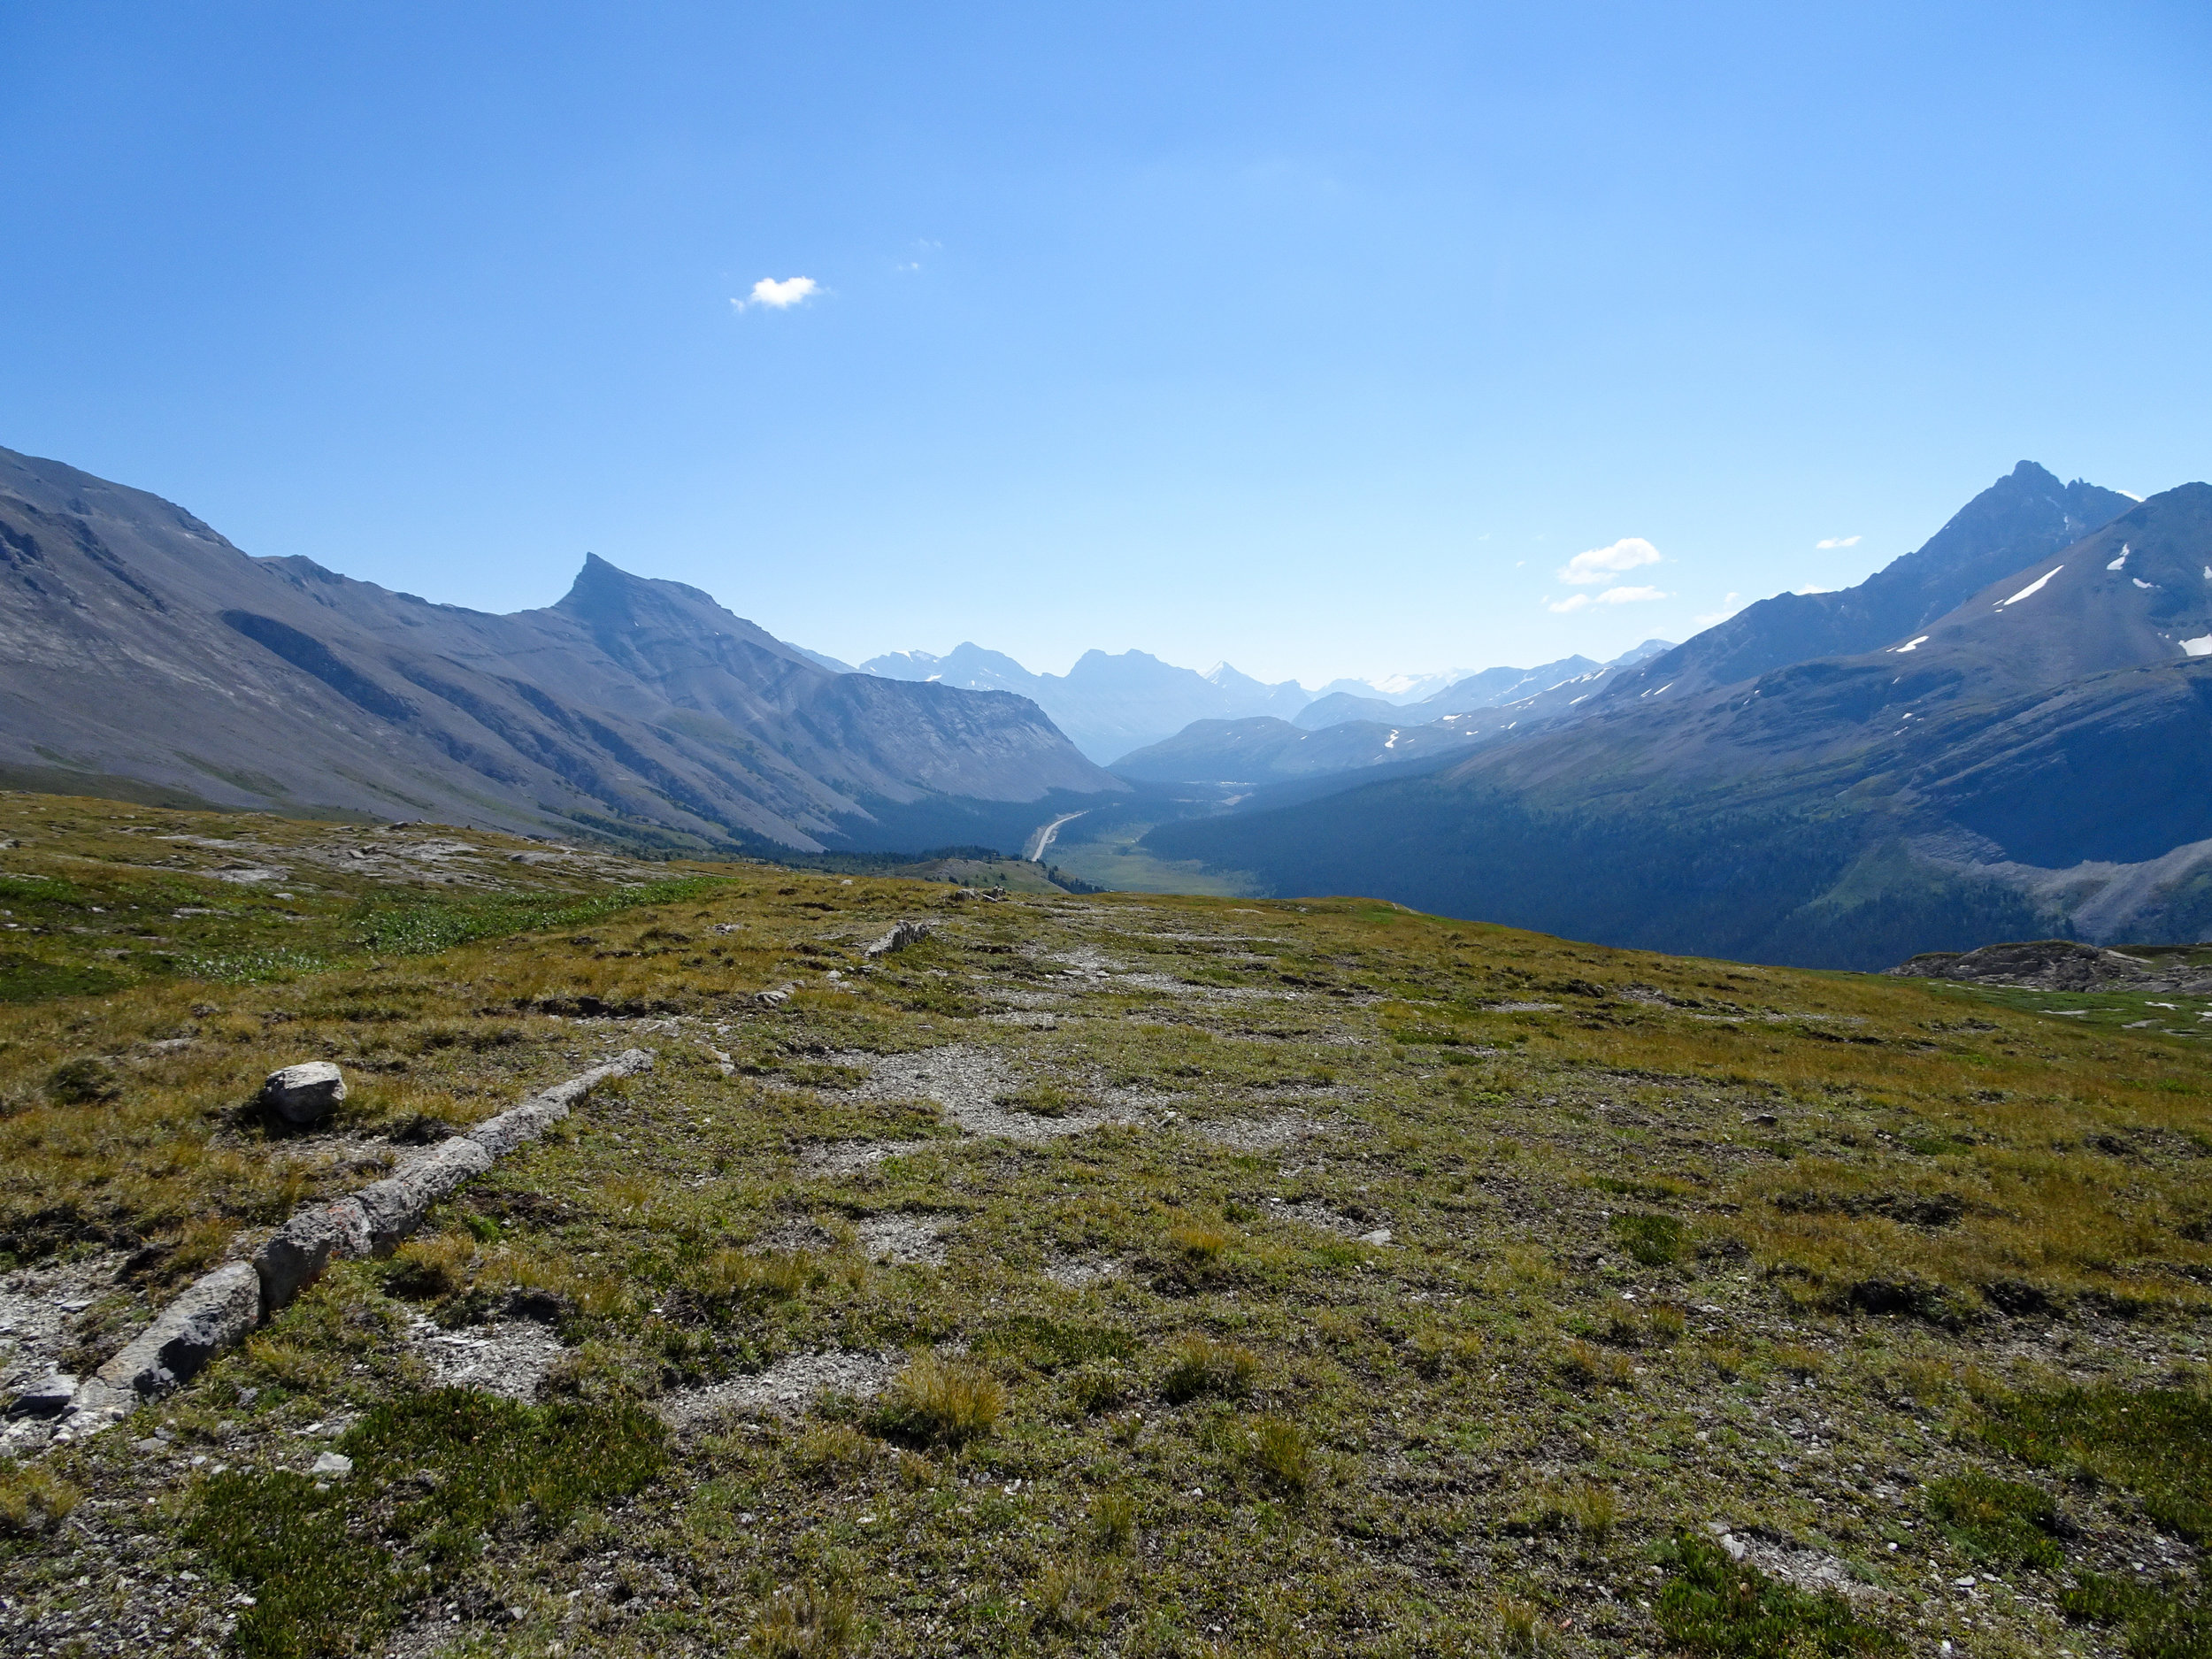 View of the Icefields Parkway from Wilcox Pass